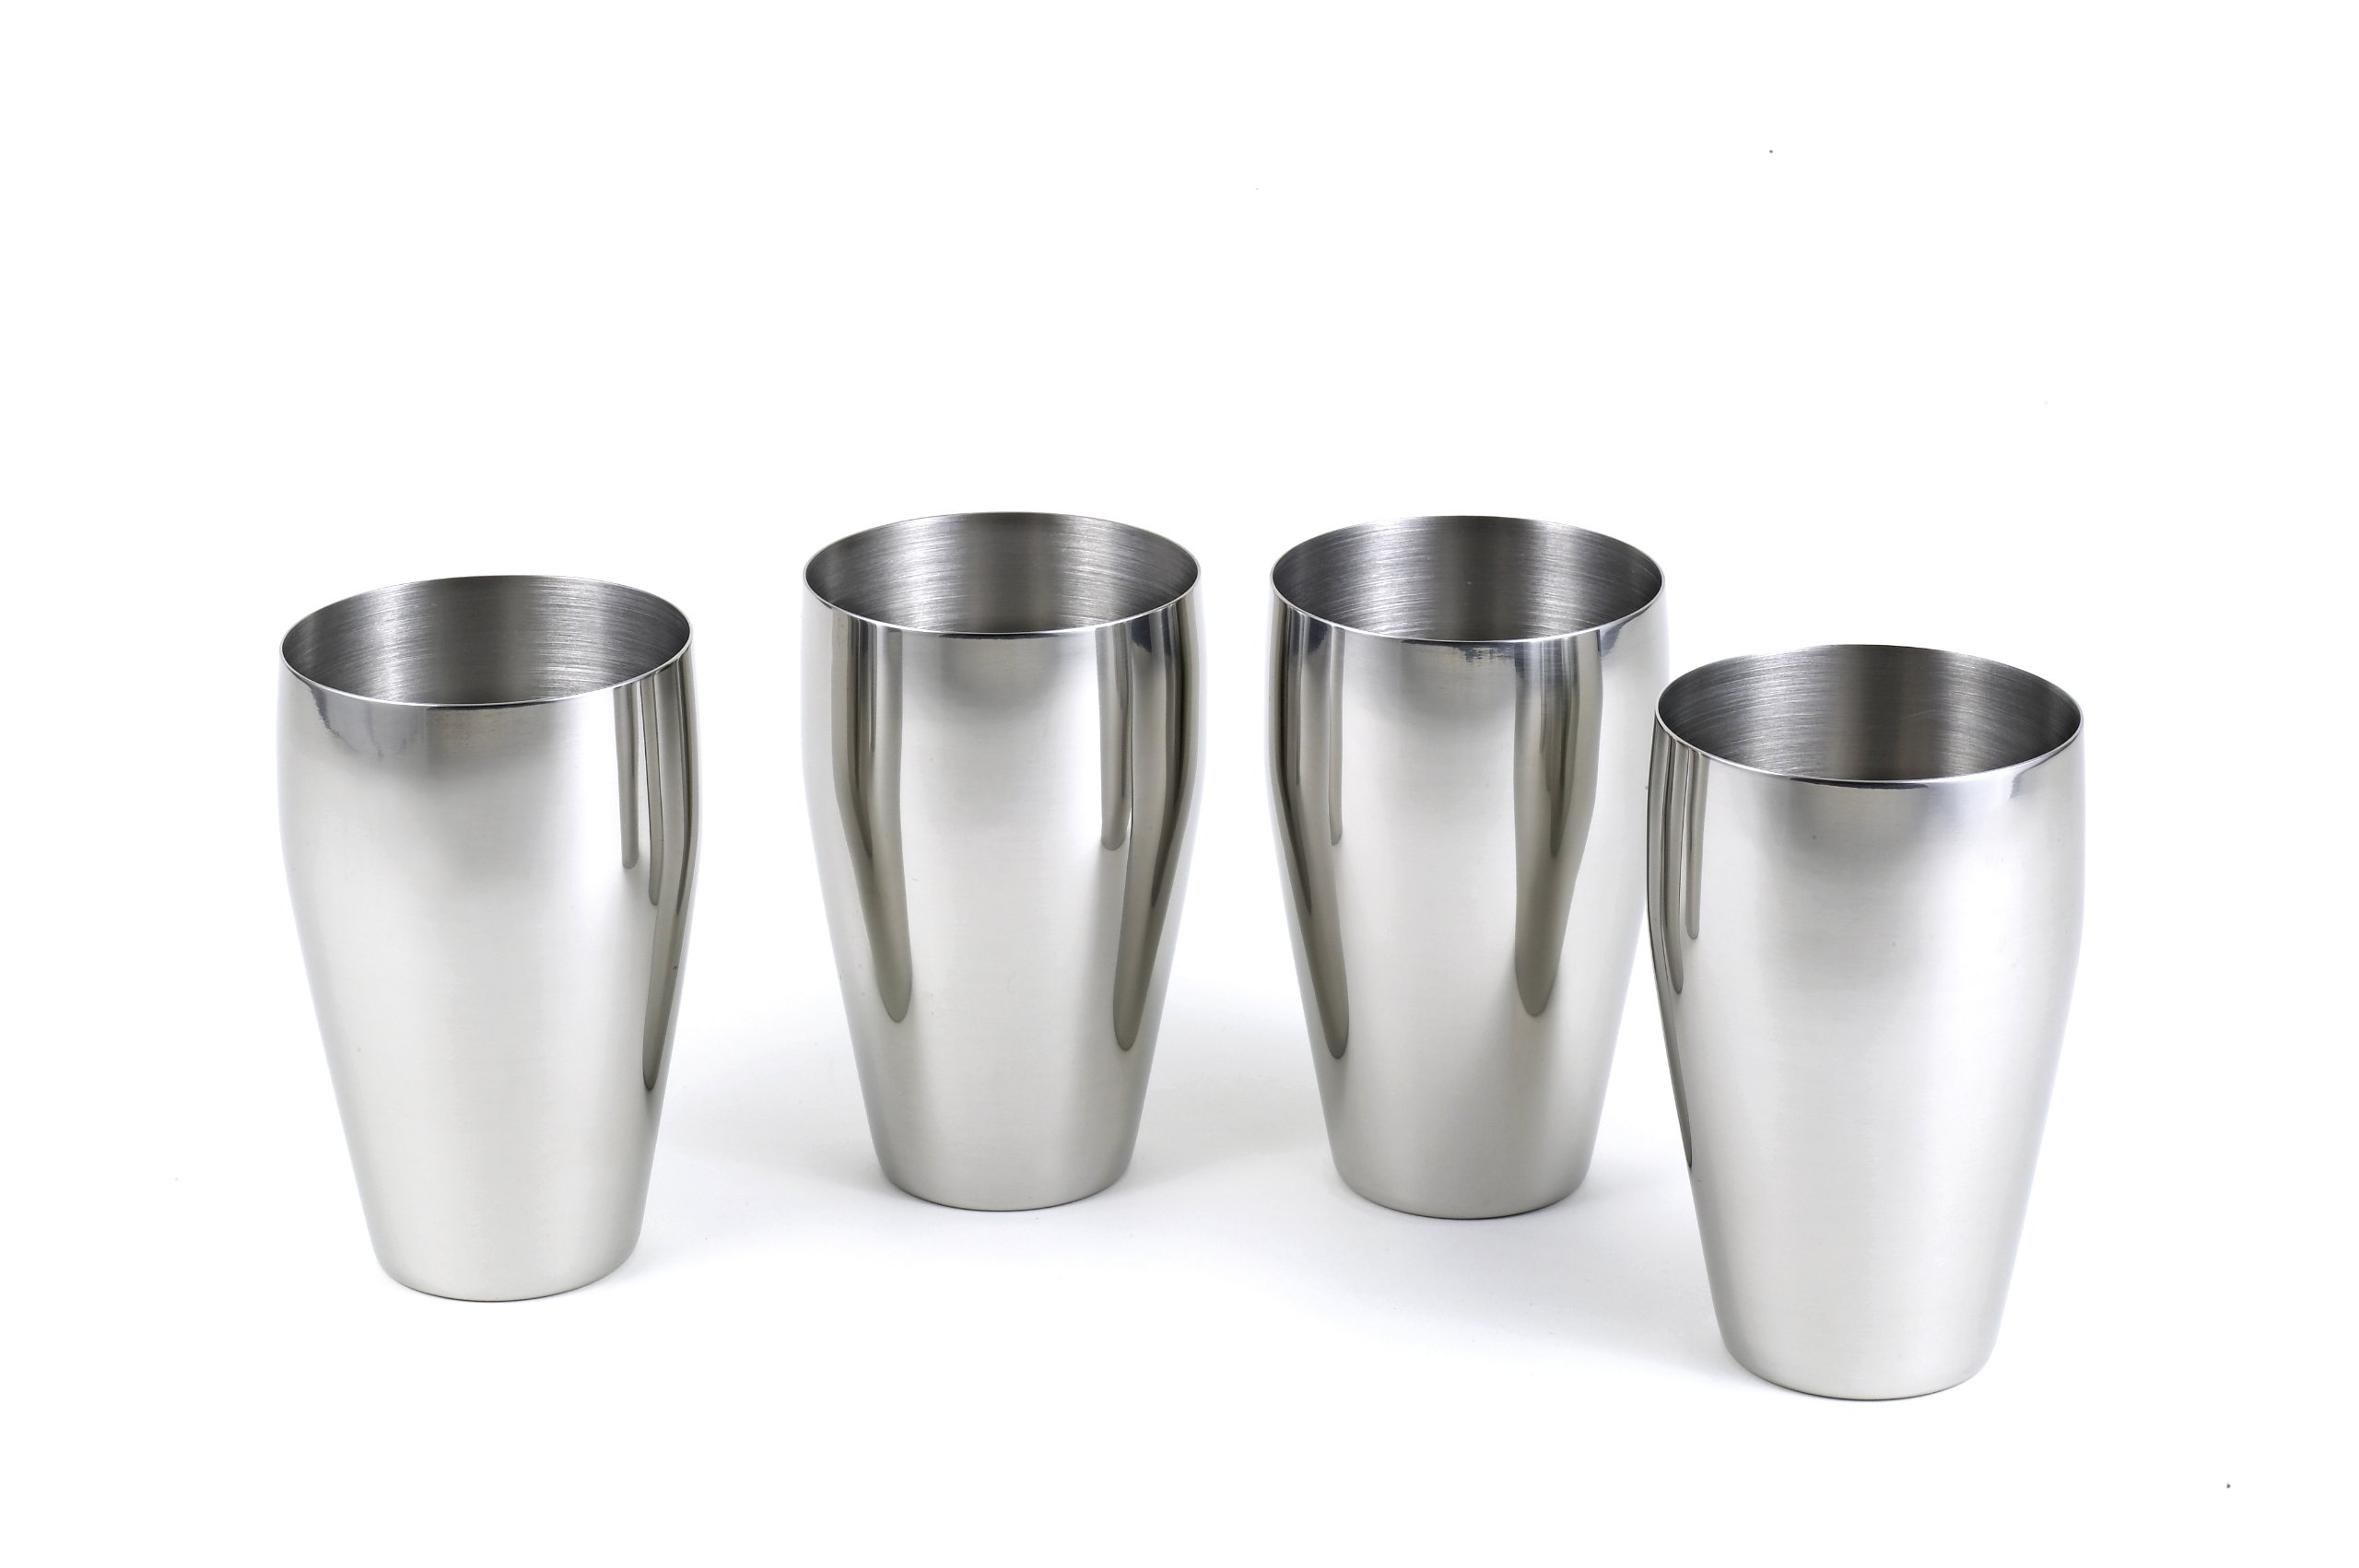 StainlessLUX 77334 4-Pc Brilliant Stainless Steel Drinking Glass / Tumbler / Pub Glass Set - Quality Drinkware for Your Enjoyment